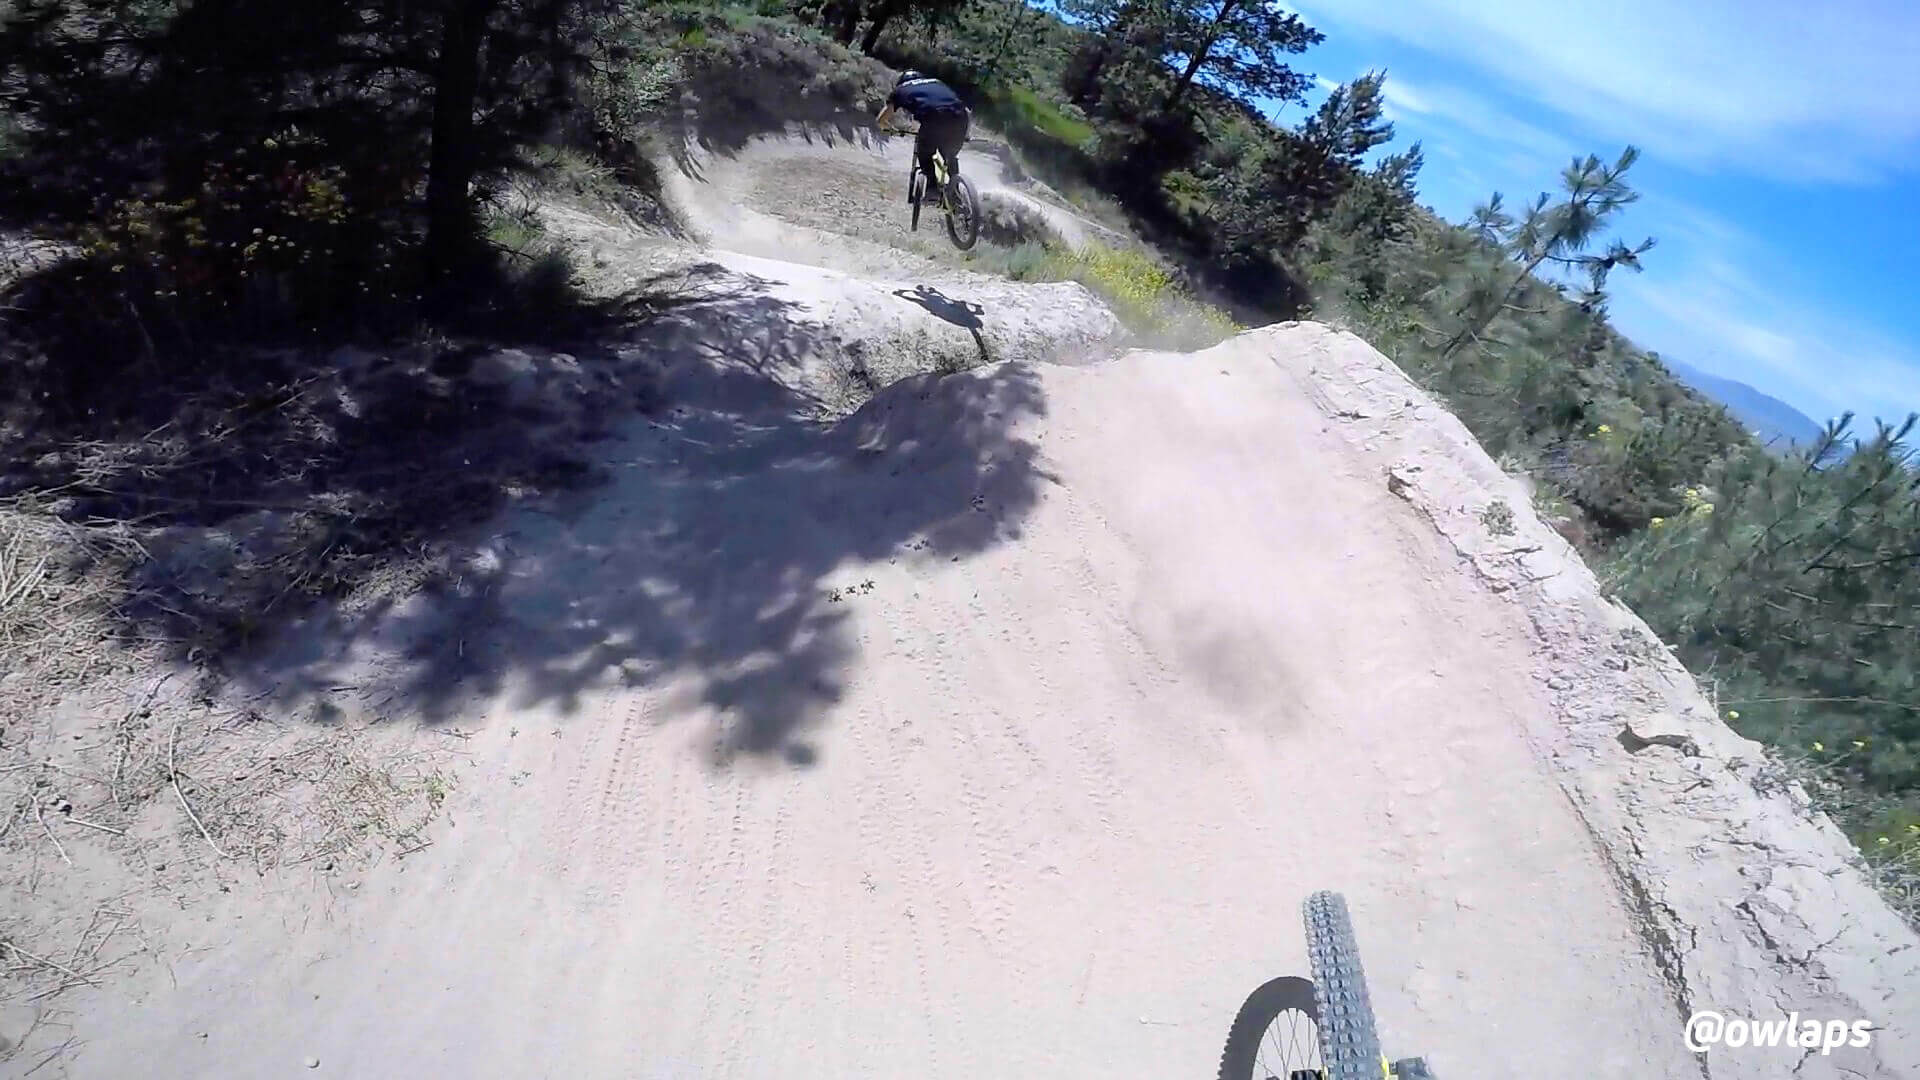 wrangler-kamloops-bike-ranch-canada-owlaps-HD-5